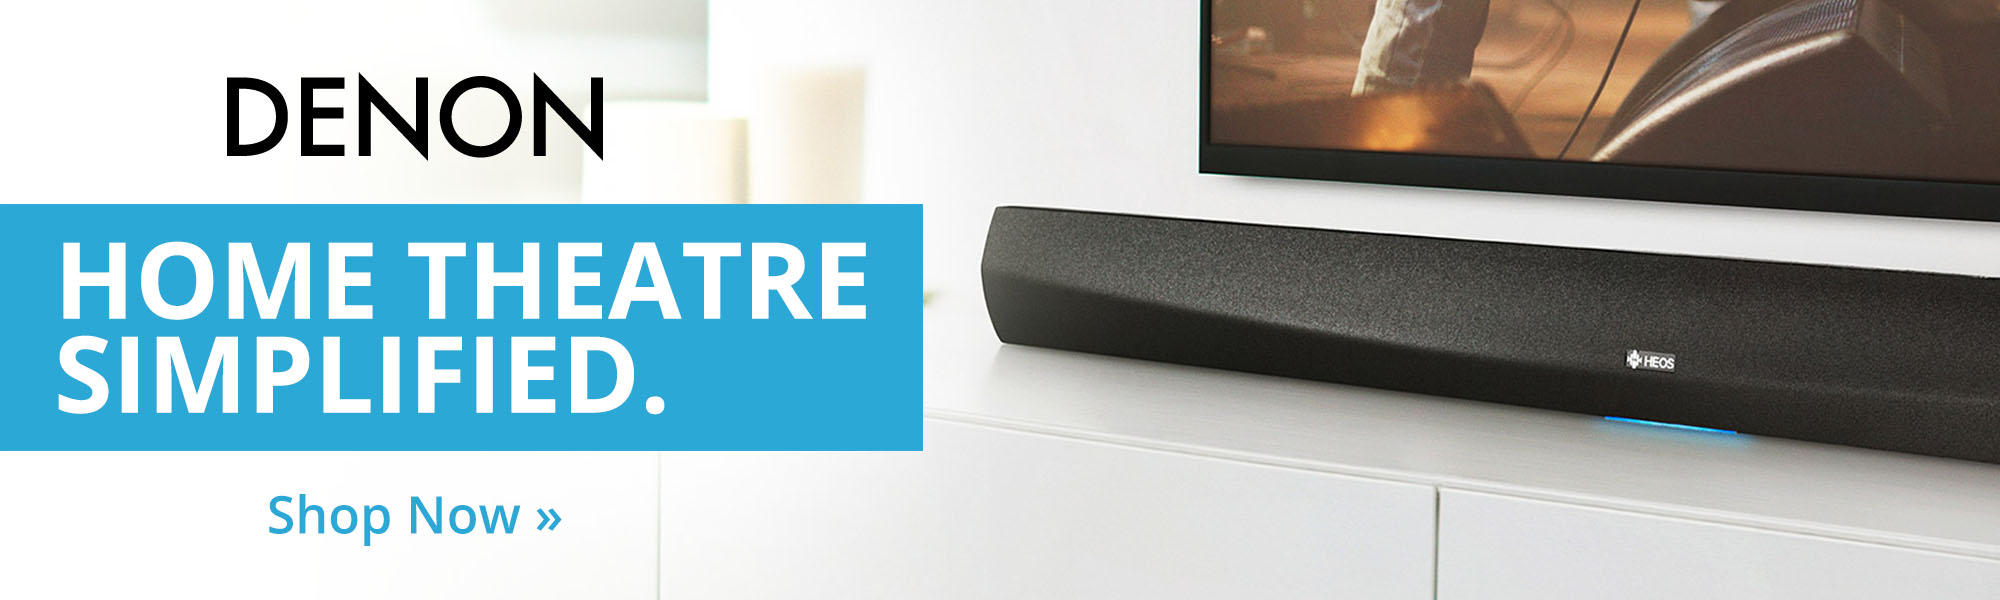 Denon home theater simplified